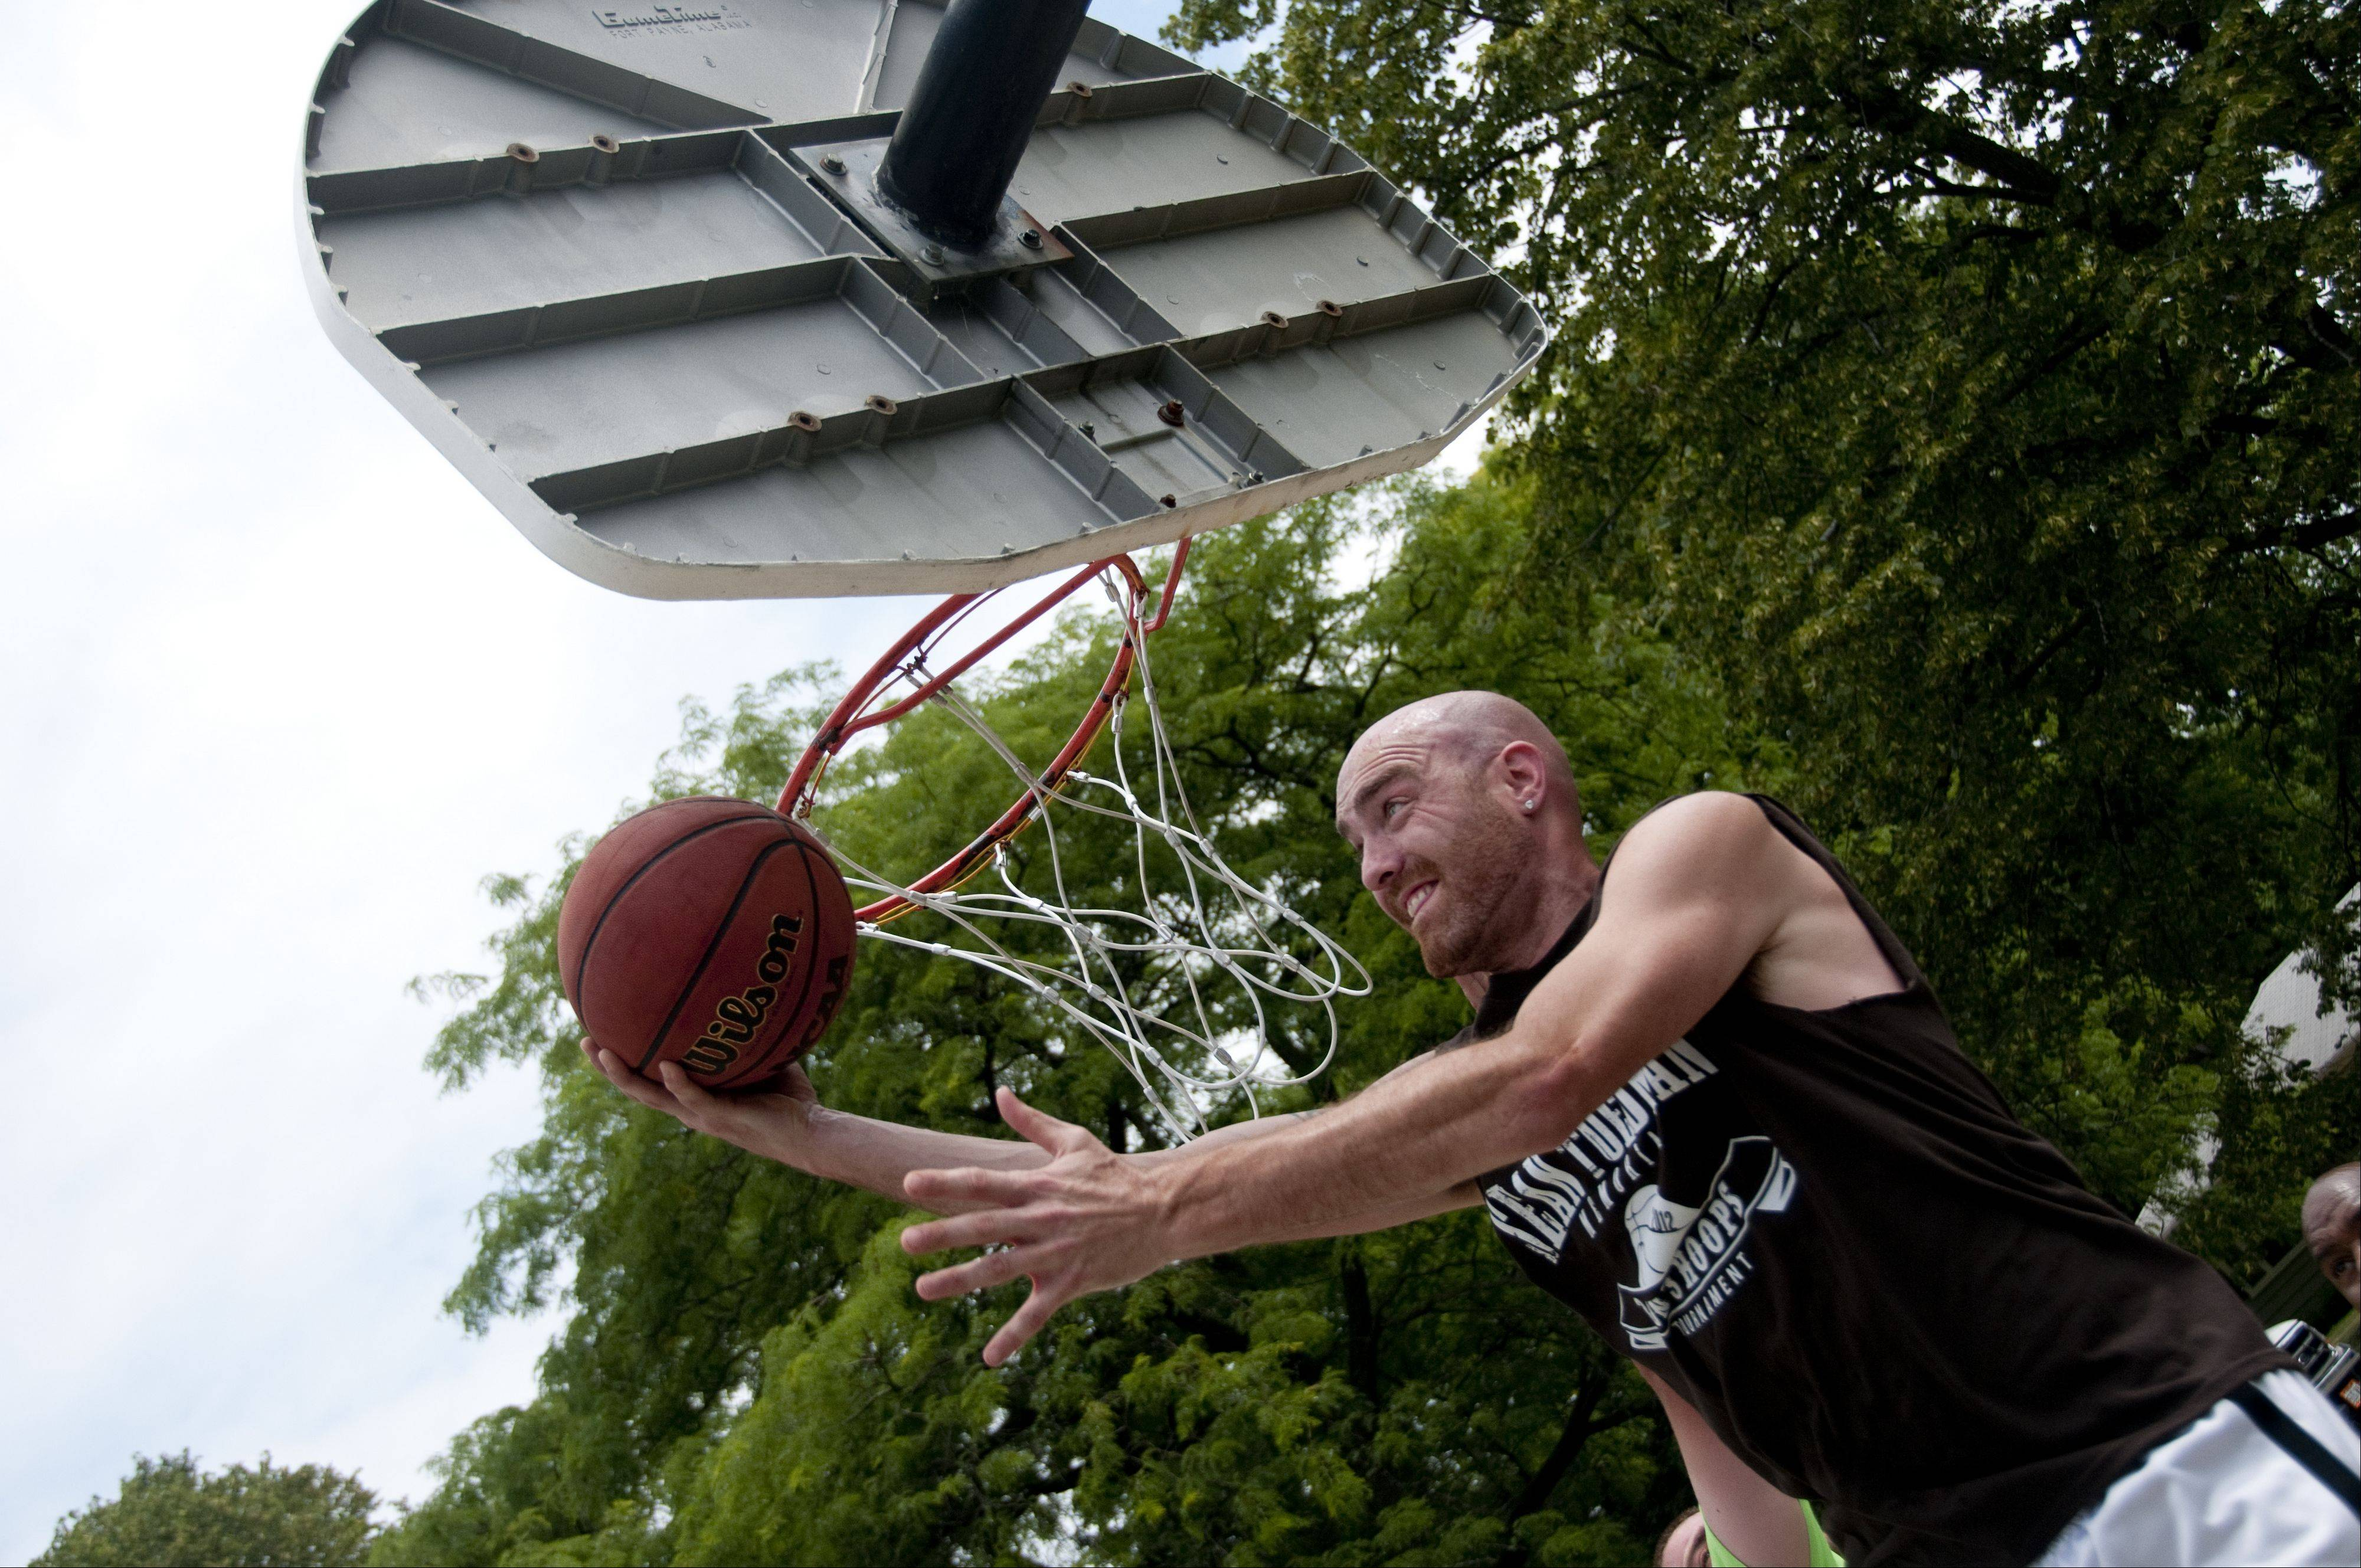 Mike McKibben, a Lake in the Hills resident, goes for a layup during the second annual Sean Toedman Memorial 3-on-3 Basketball Tournament Sunday at Lions Park in East Dundee. Proceeds from the event went to St. Jude's Children's Research Hospital.